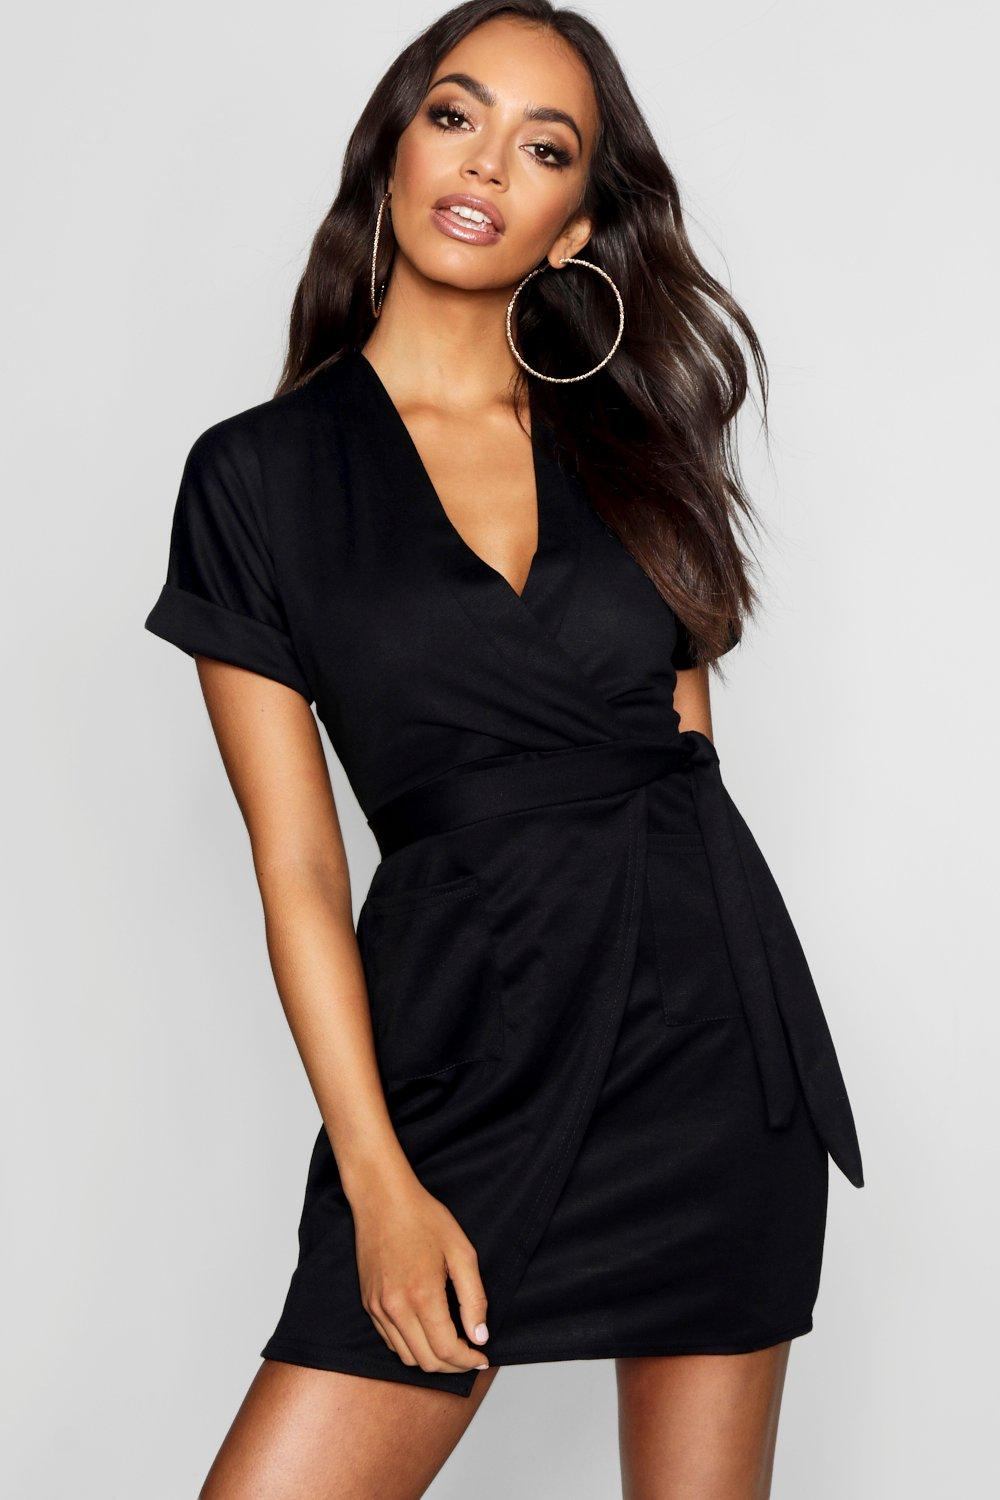 Black Wrap Dresses for Women